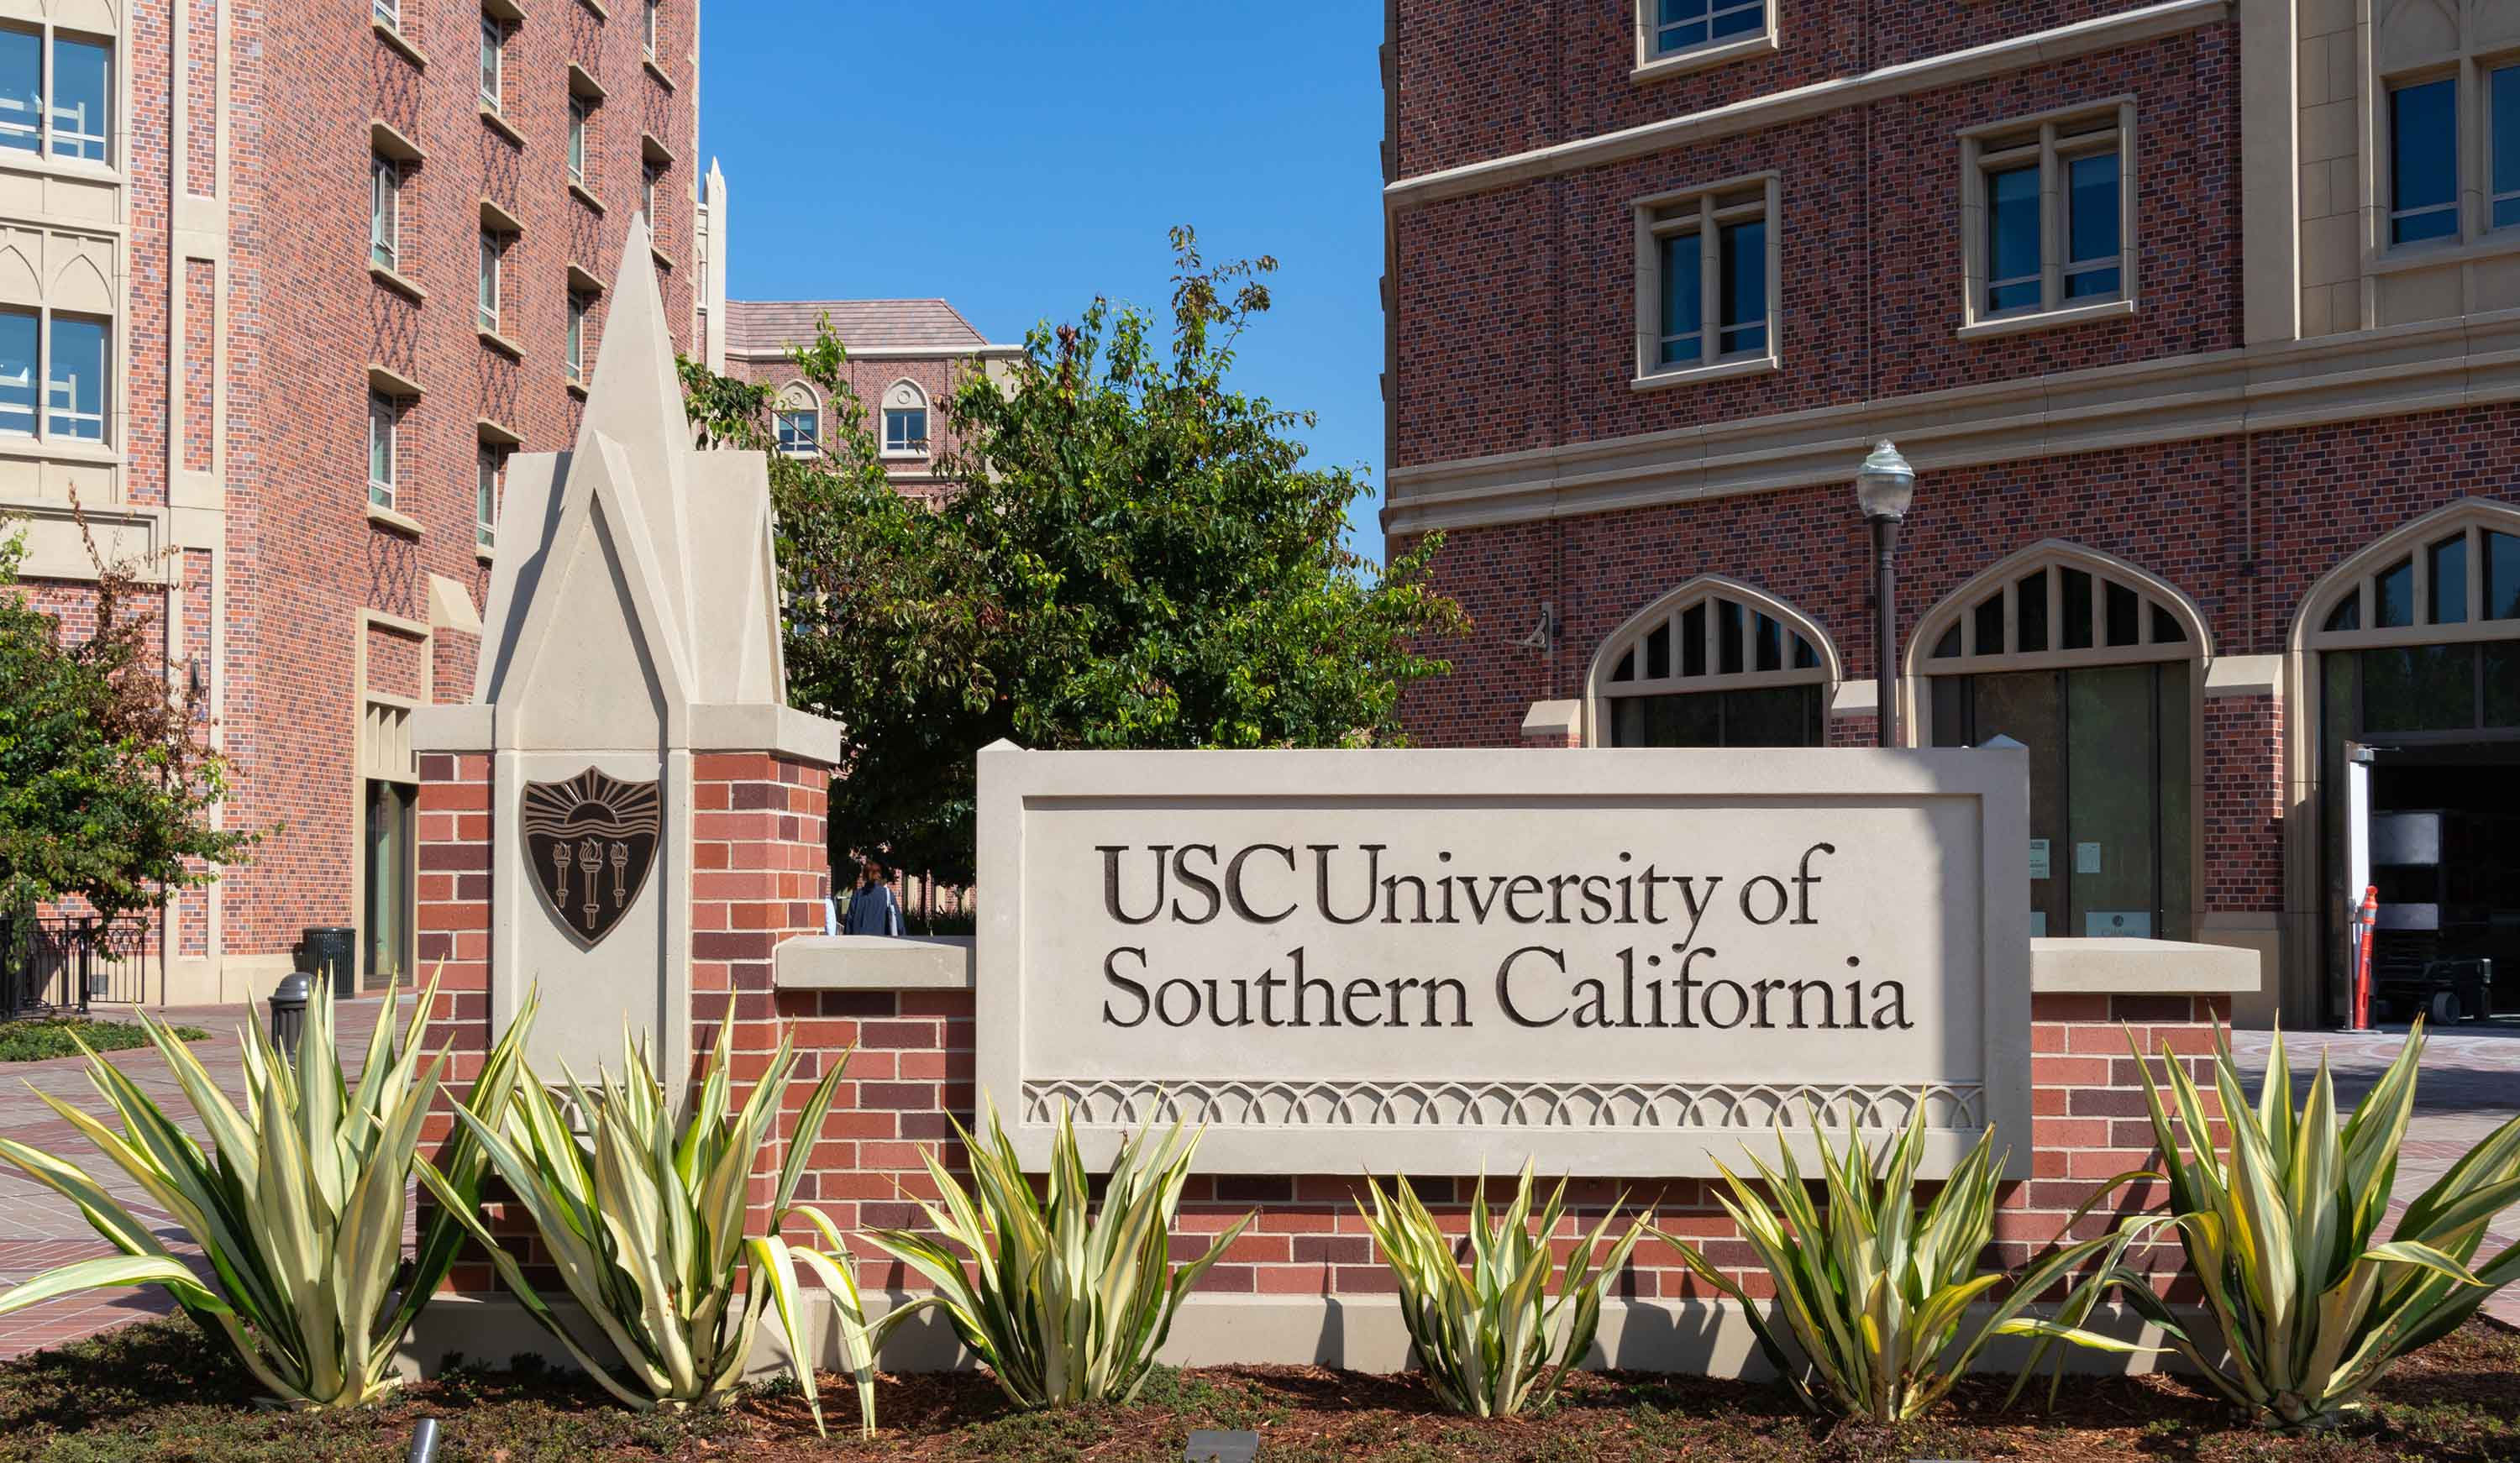 USC is waiving tuition for students whose families make less than $80,000